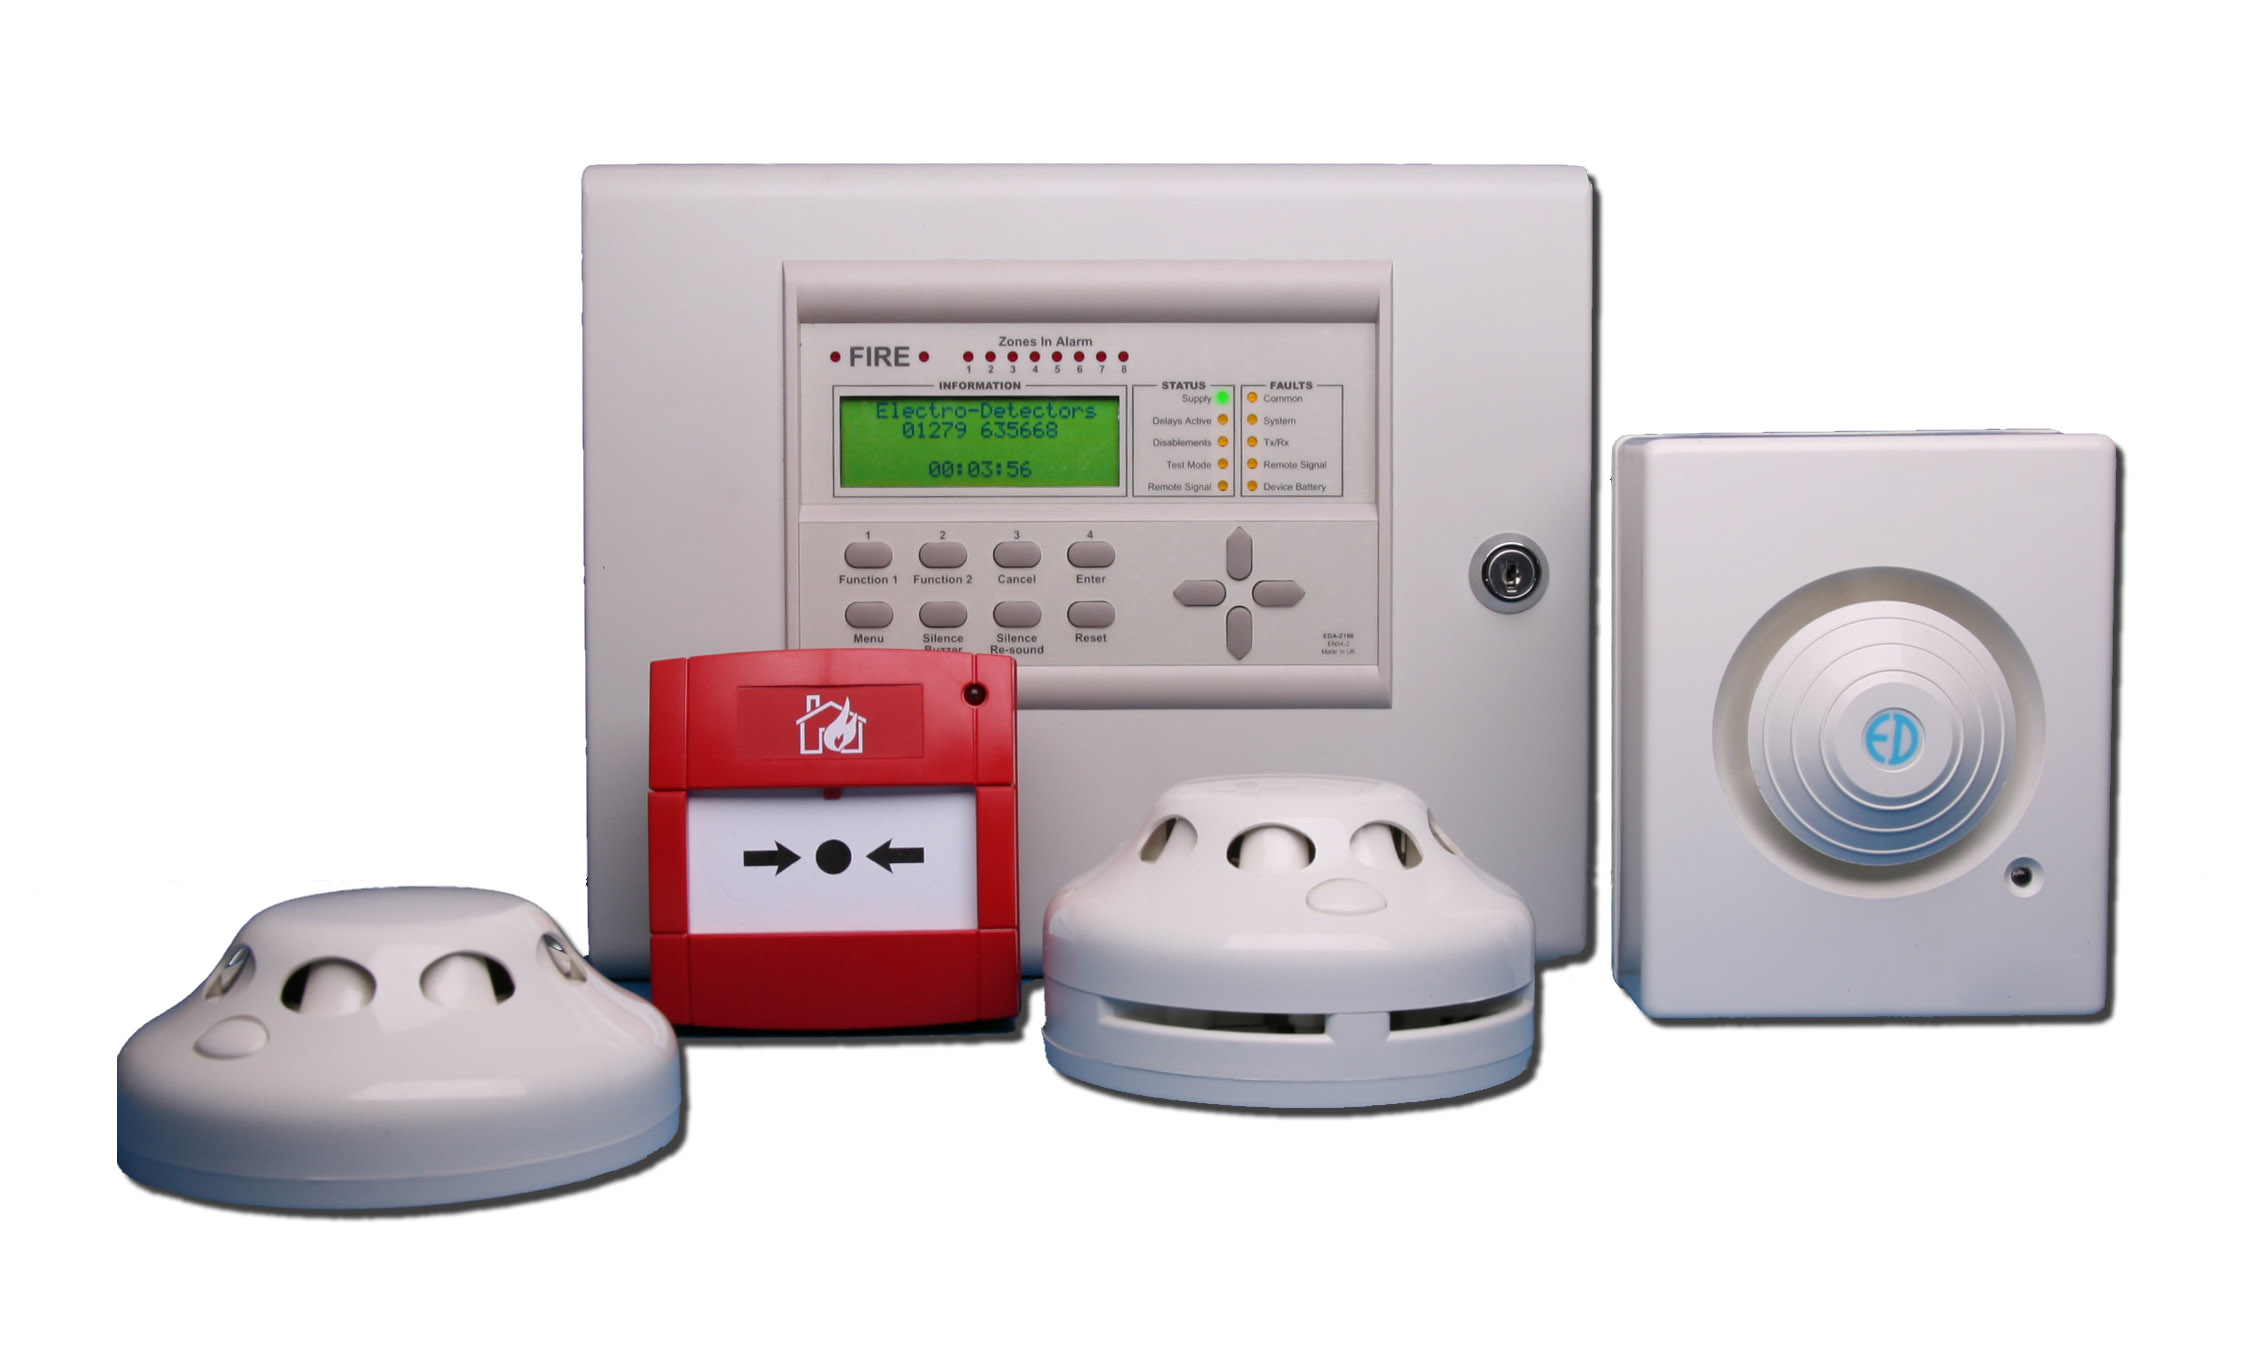 RPS Addressable Fire Alarm System